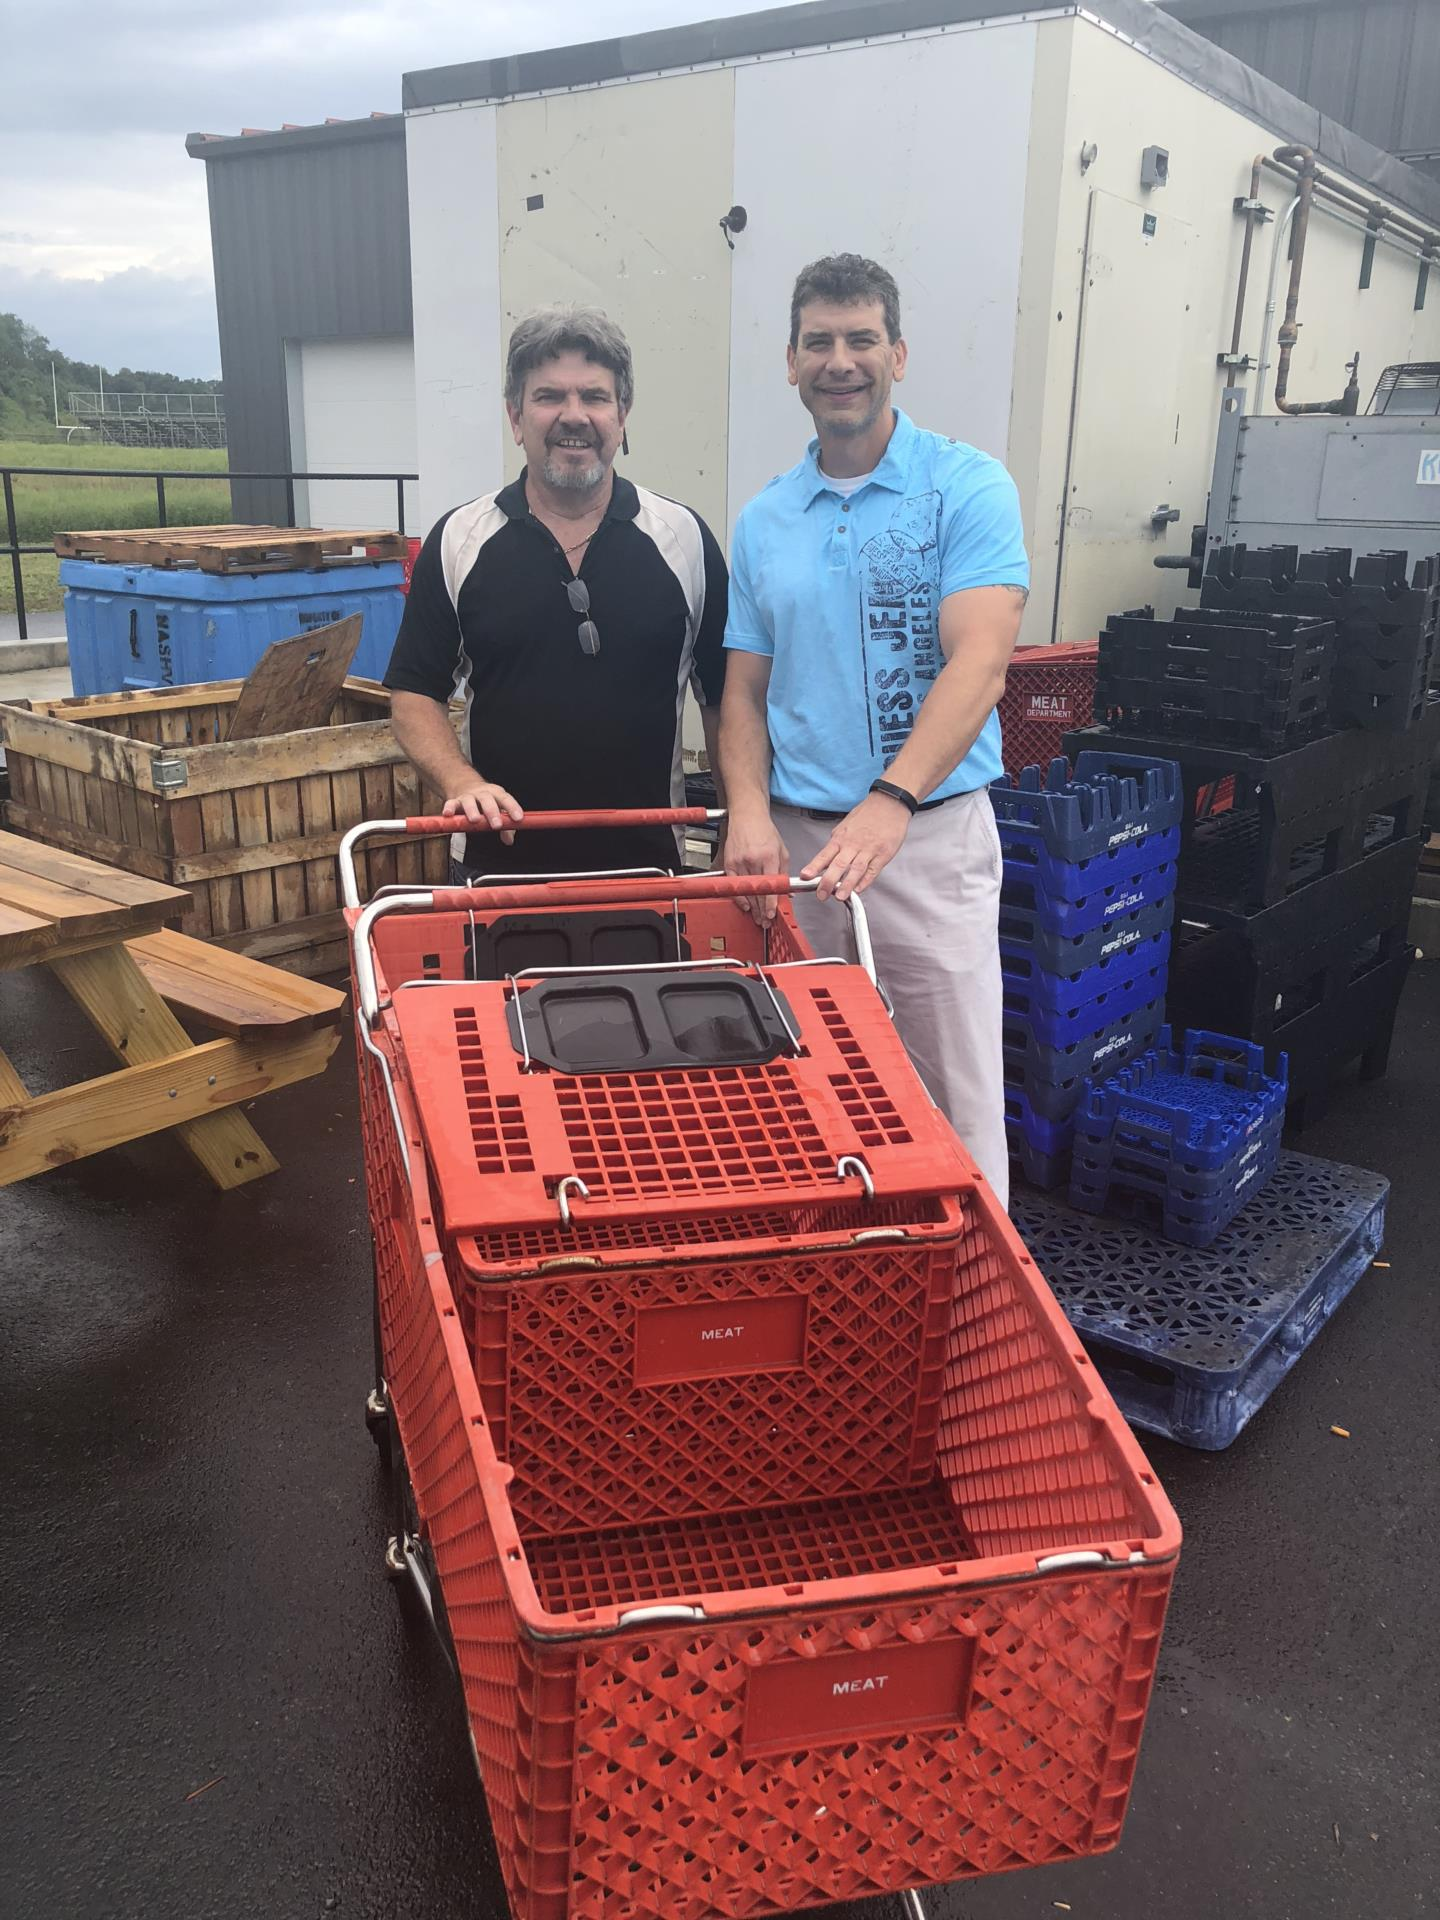 Campbells Market donates to Recycling Program